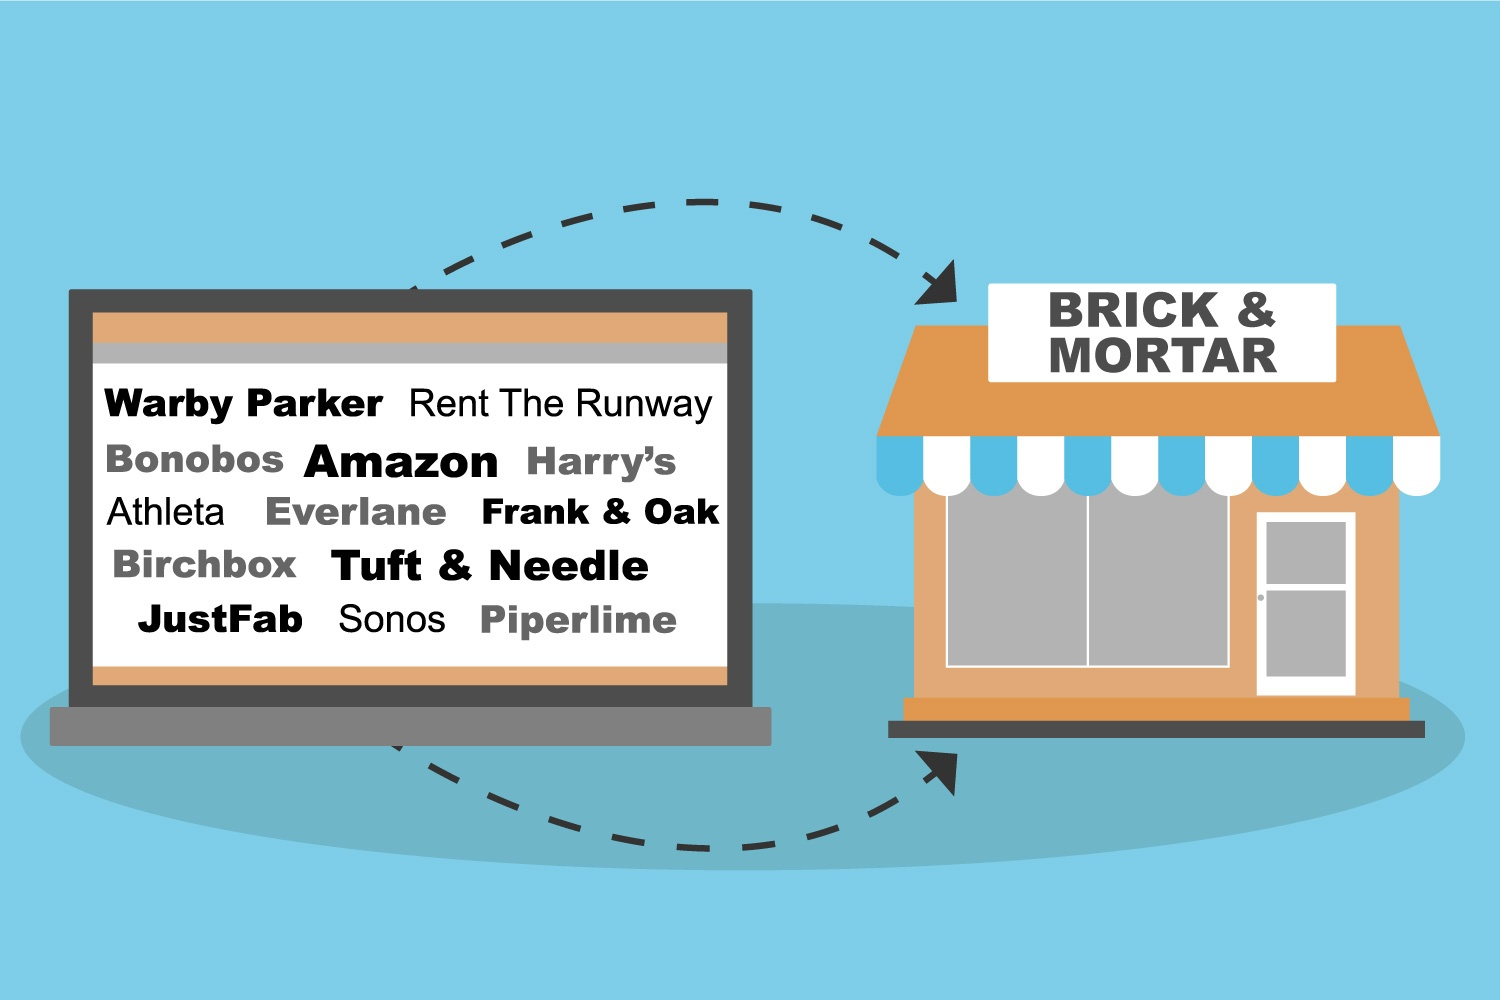 Clicks to Bricks: The Value in the Retail Experience